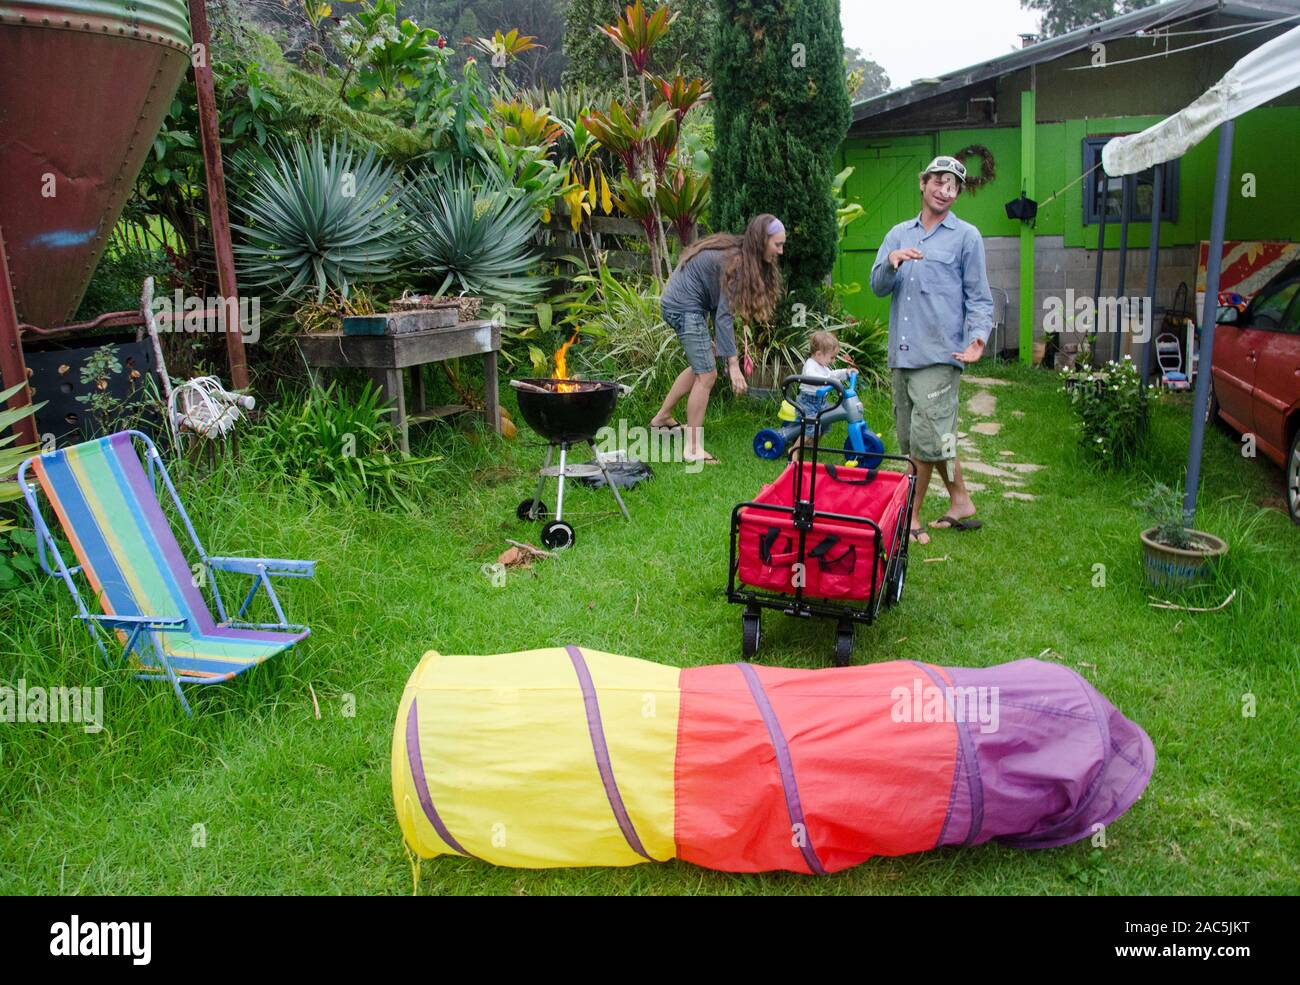 A young local mother, father and toddler son play in their yard, with a barbecue starting and toys scattered about, Big Island. Stock Photo